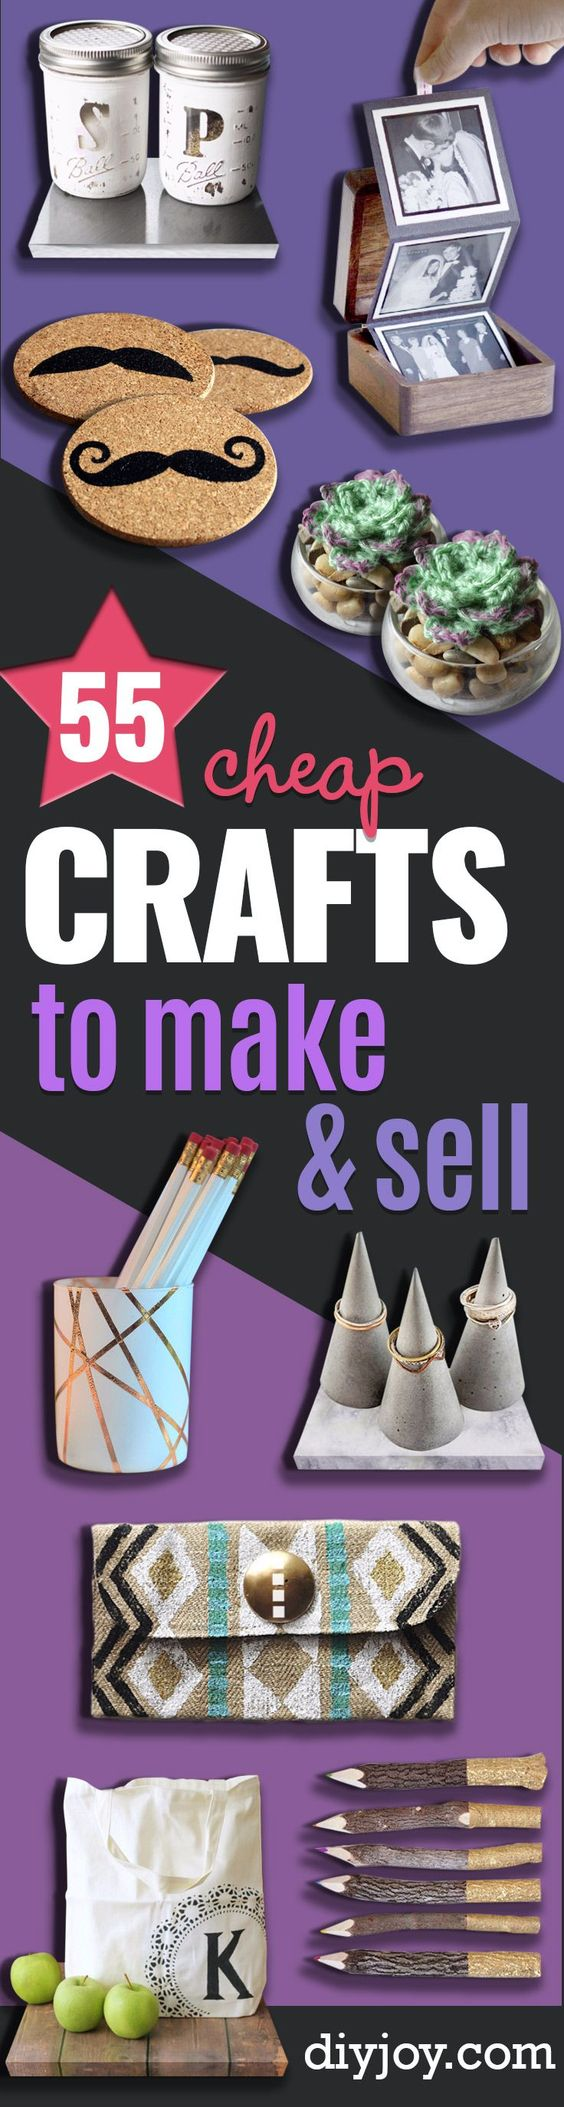 crafts to make make and sell and diy craft projects on